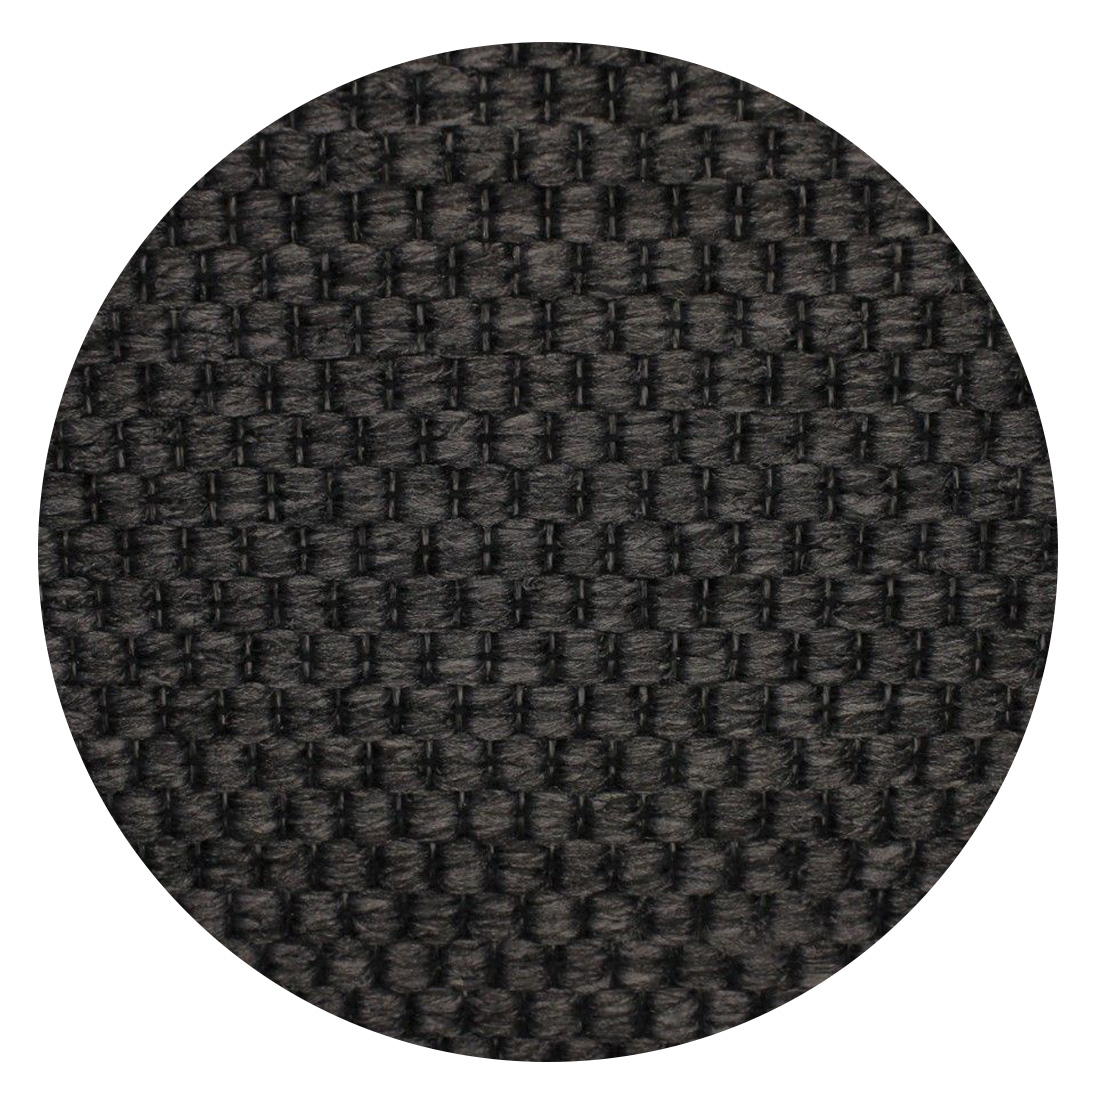 Rond Vloerkleed Casablanca Natura Geweven Anthracite